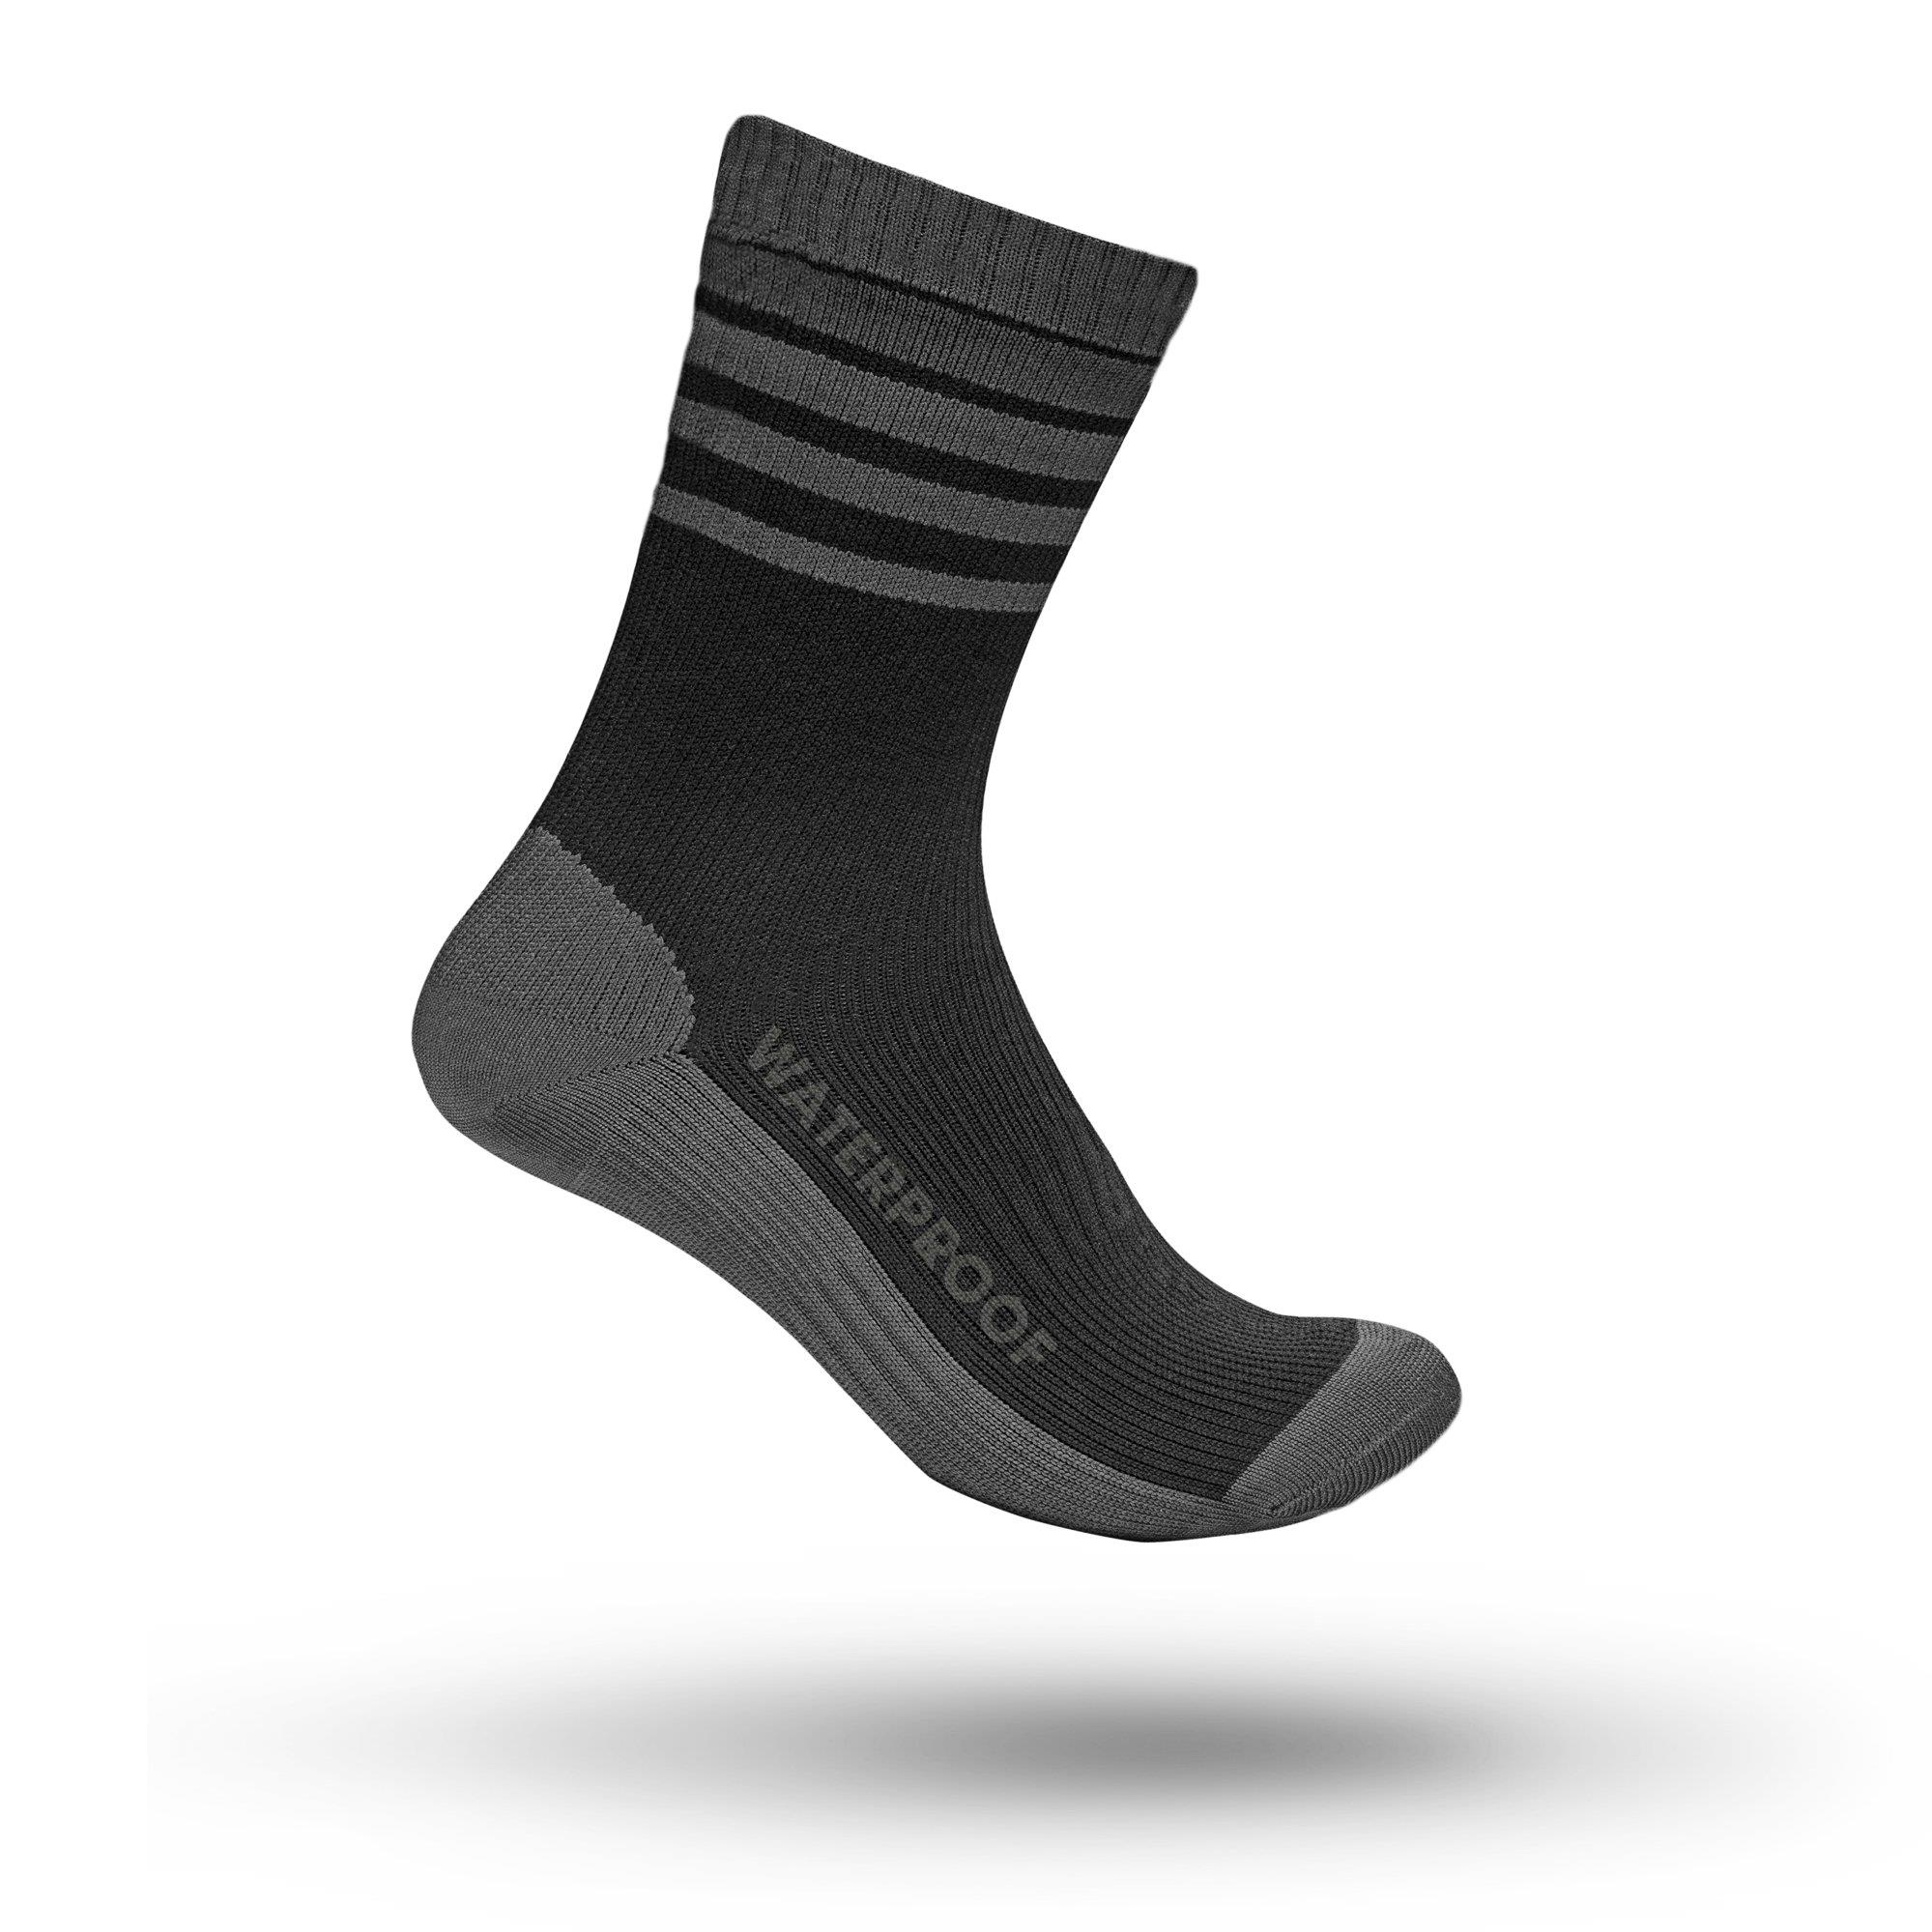 Waterproof-Merino-Thermal-Sock1.jpg